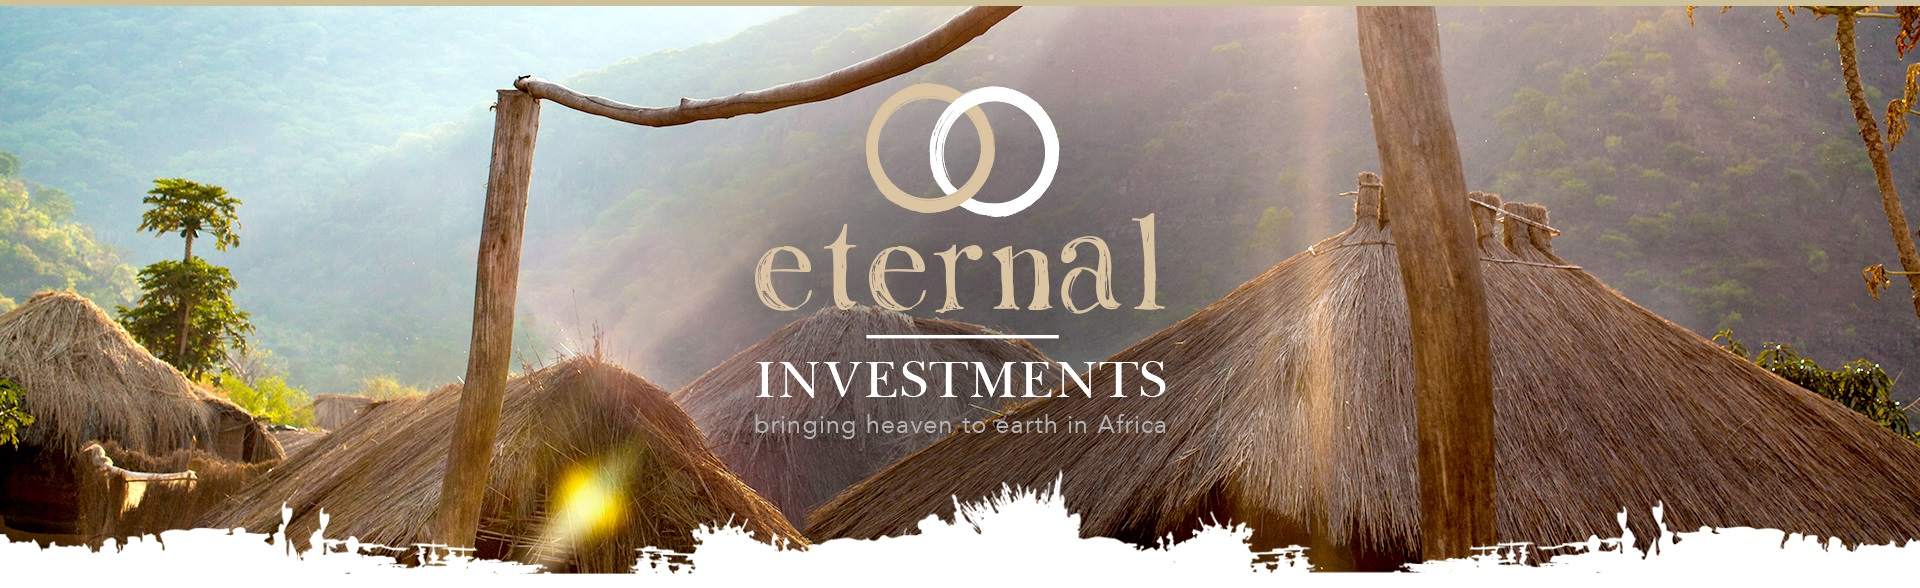 eternal-investment-contact-us-banner.jpg